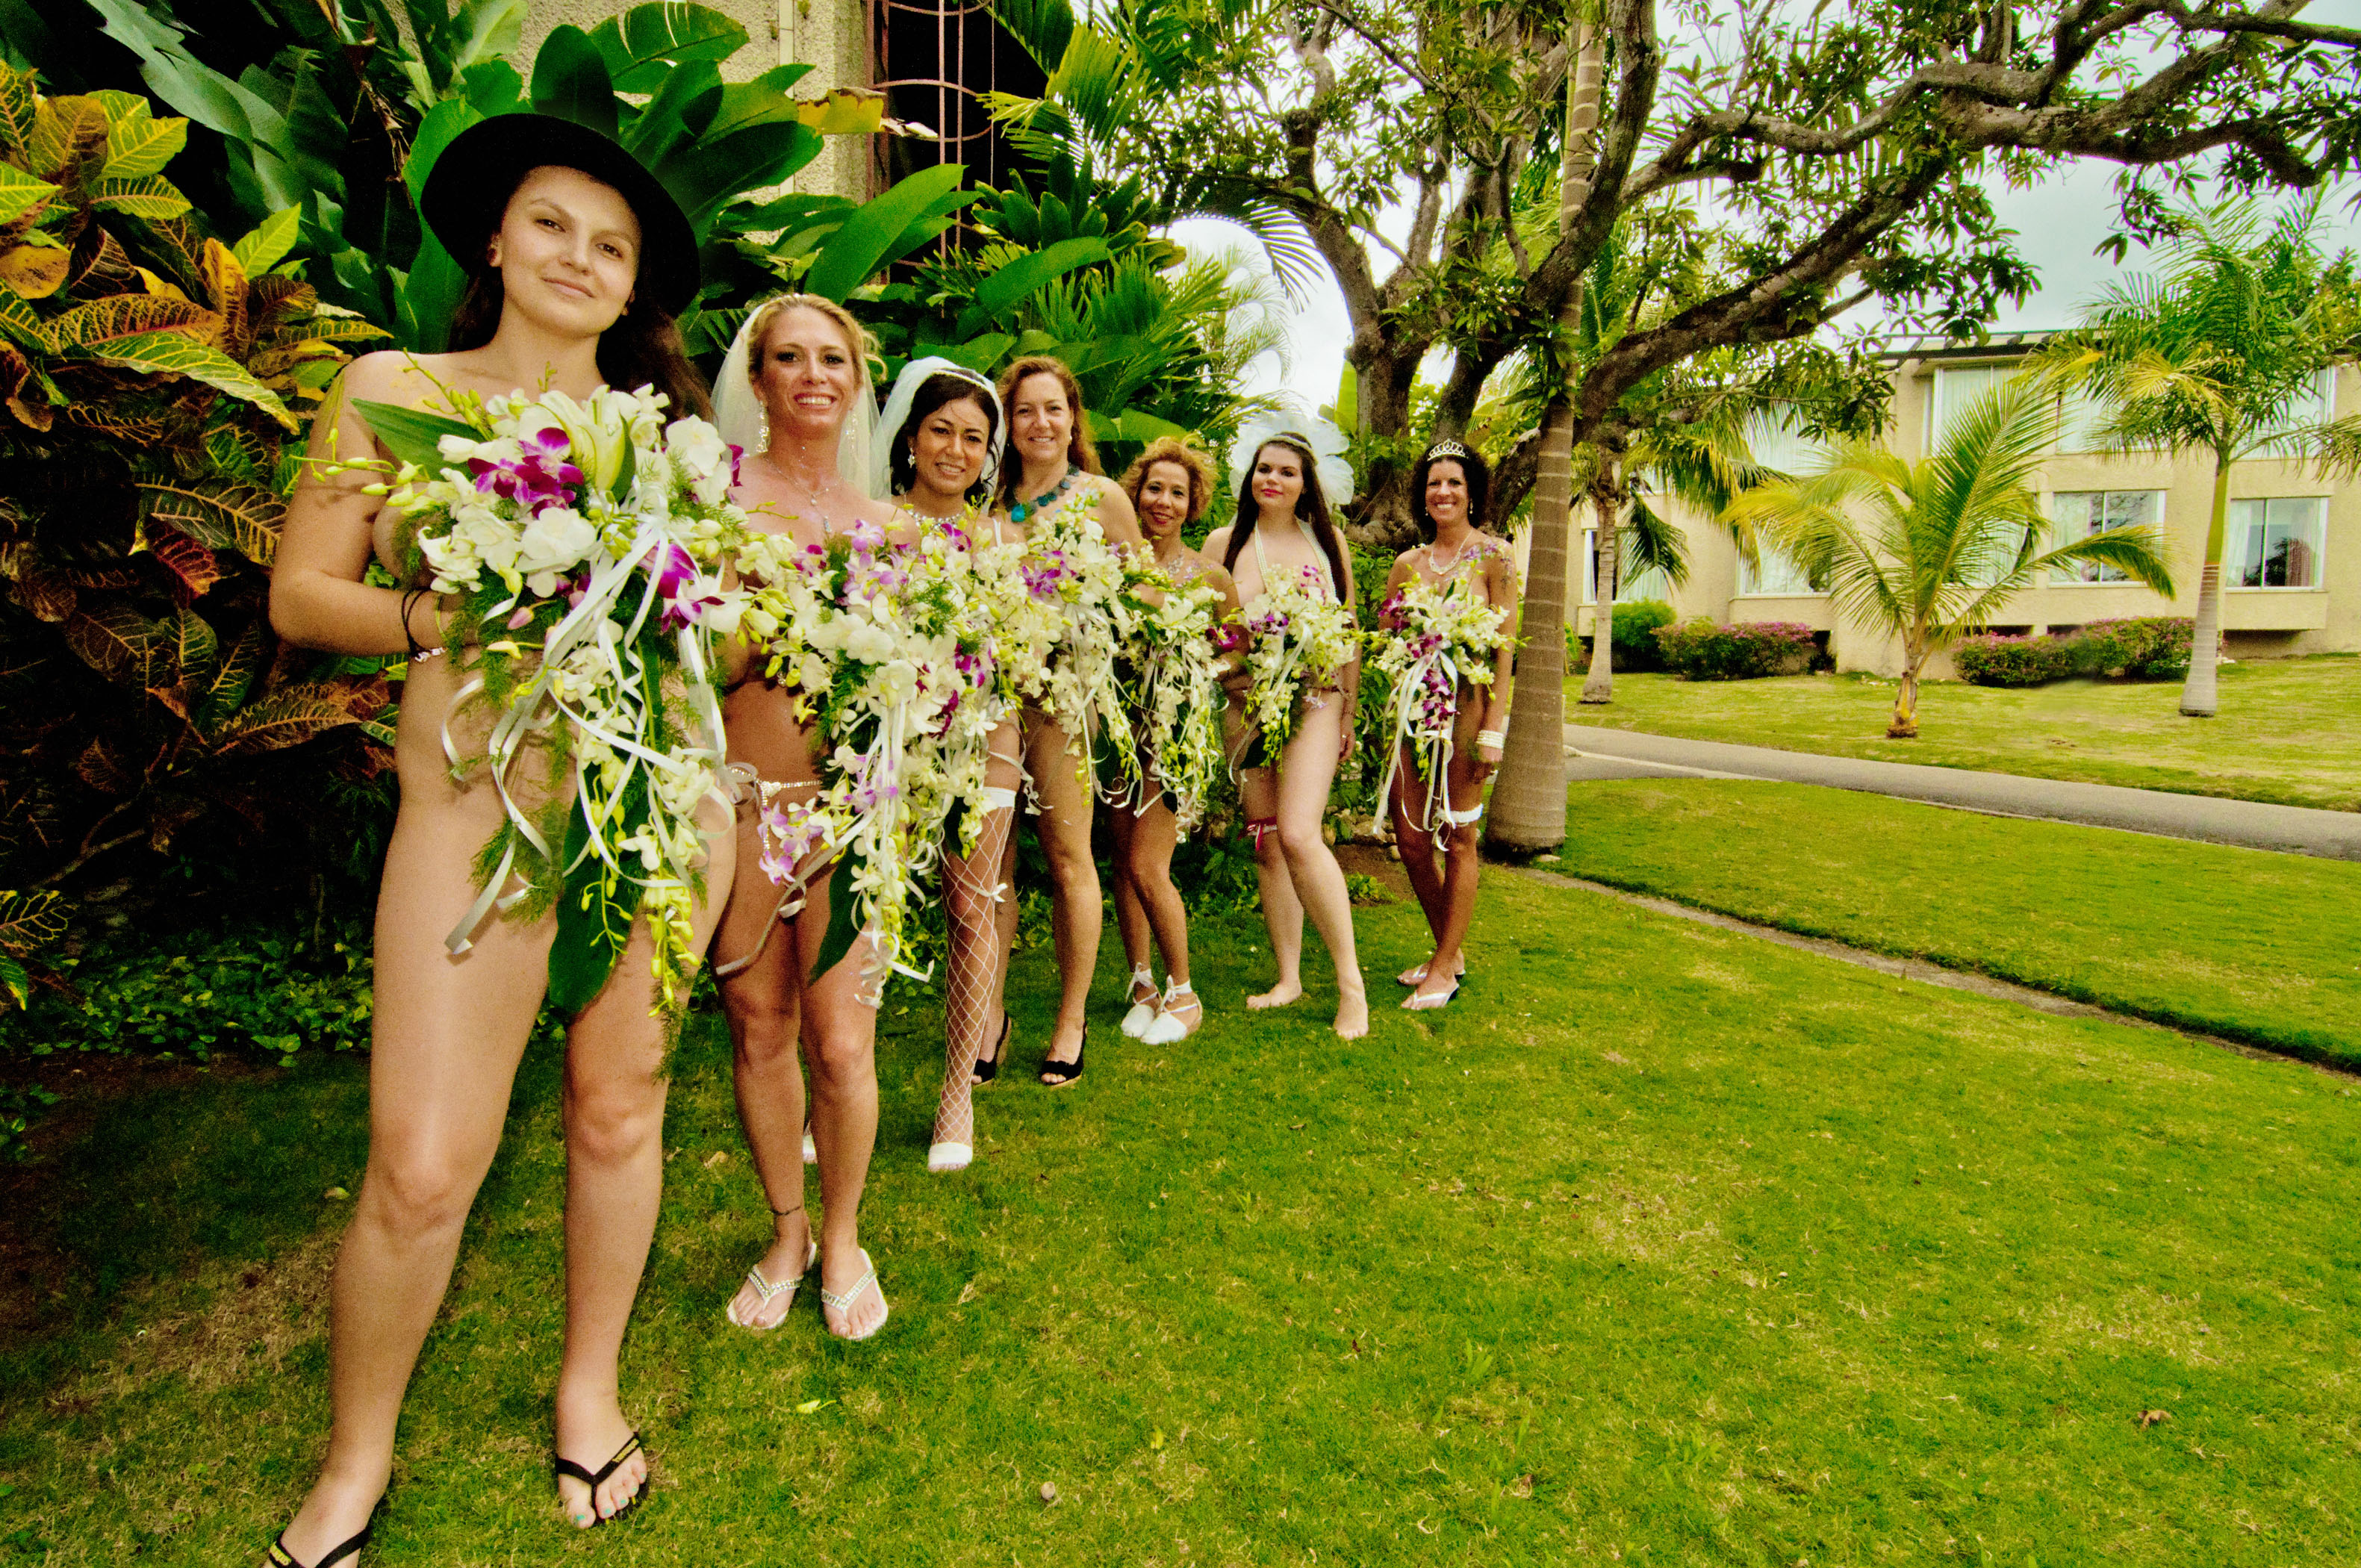 Hedonism Nude Wedding – Girls Only